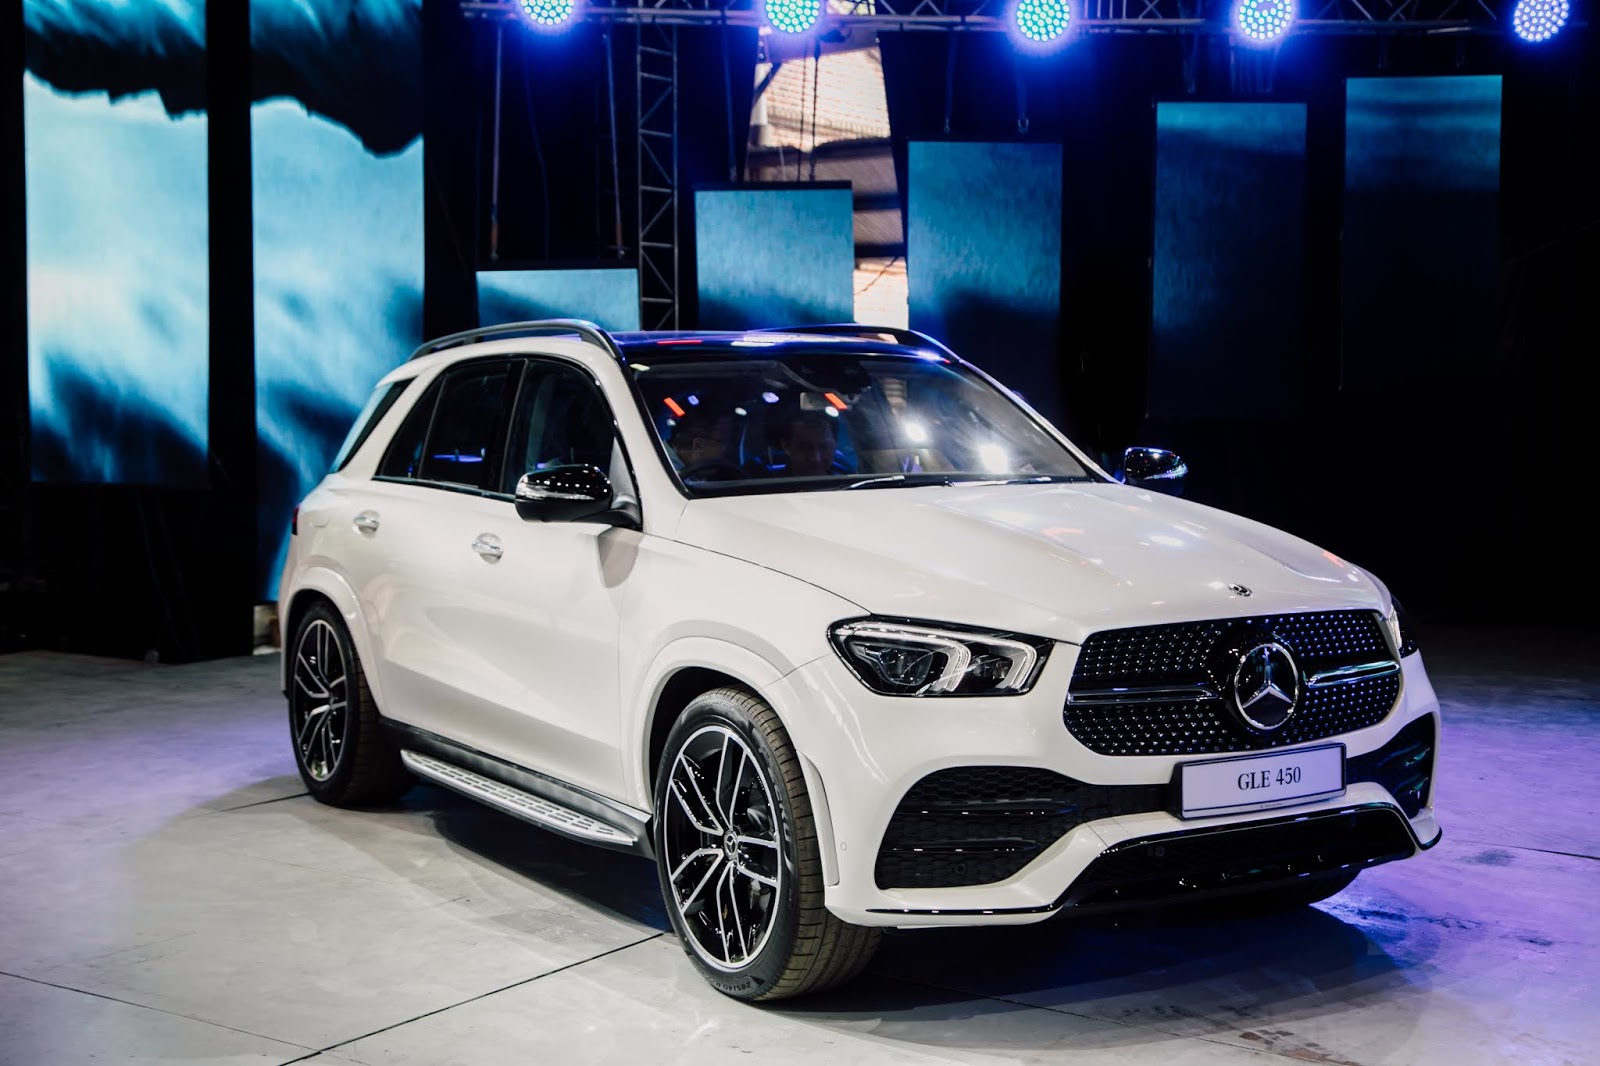 Motoring-Malaysia: The 2019 Mercedes-Benz GLE 450 AMG Line ...